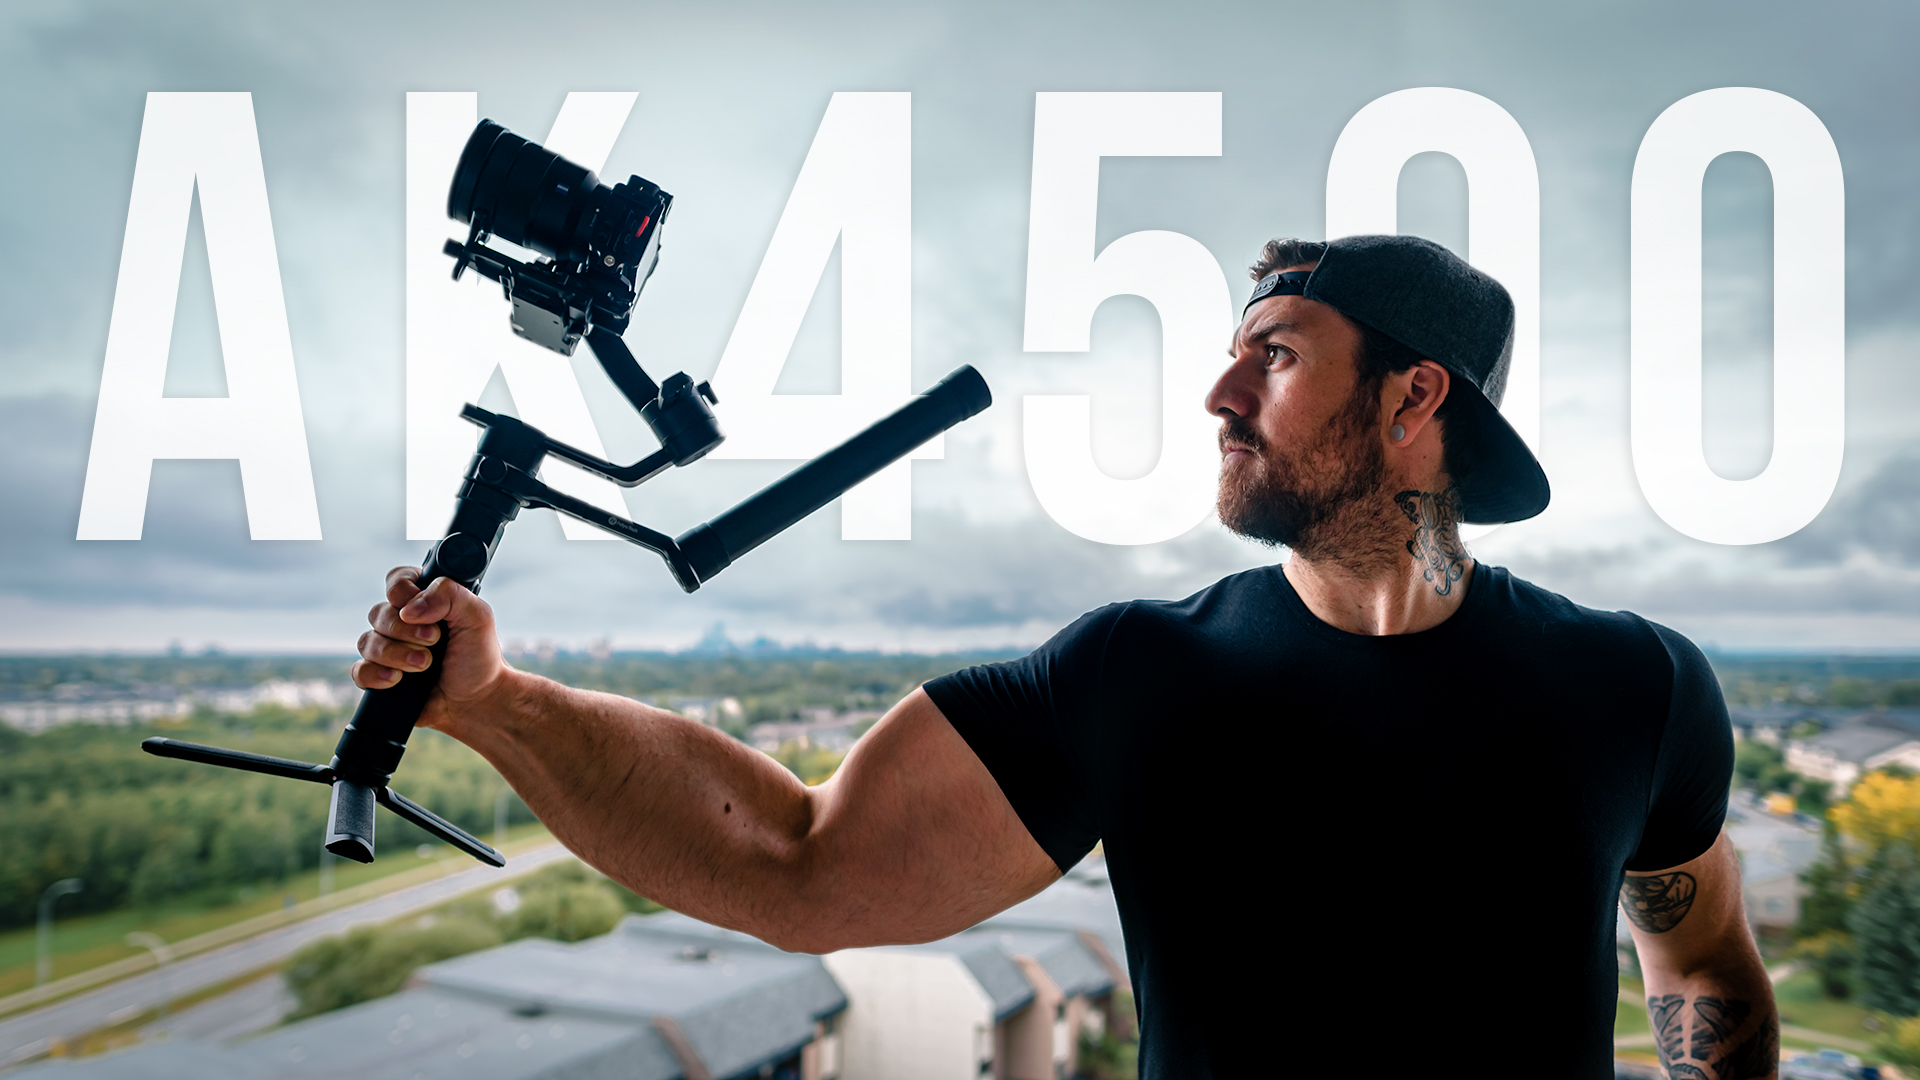 This Gimbal is WAY BETTER! // FeiyuTech AK4500 Review + Giveaway